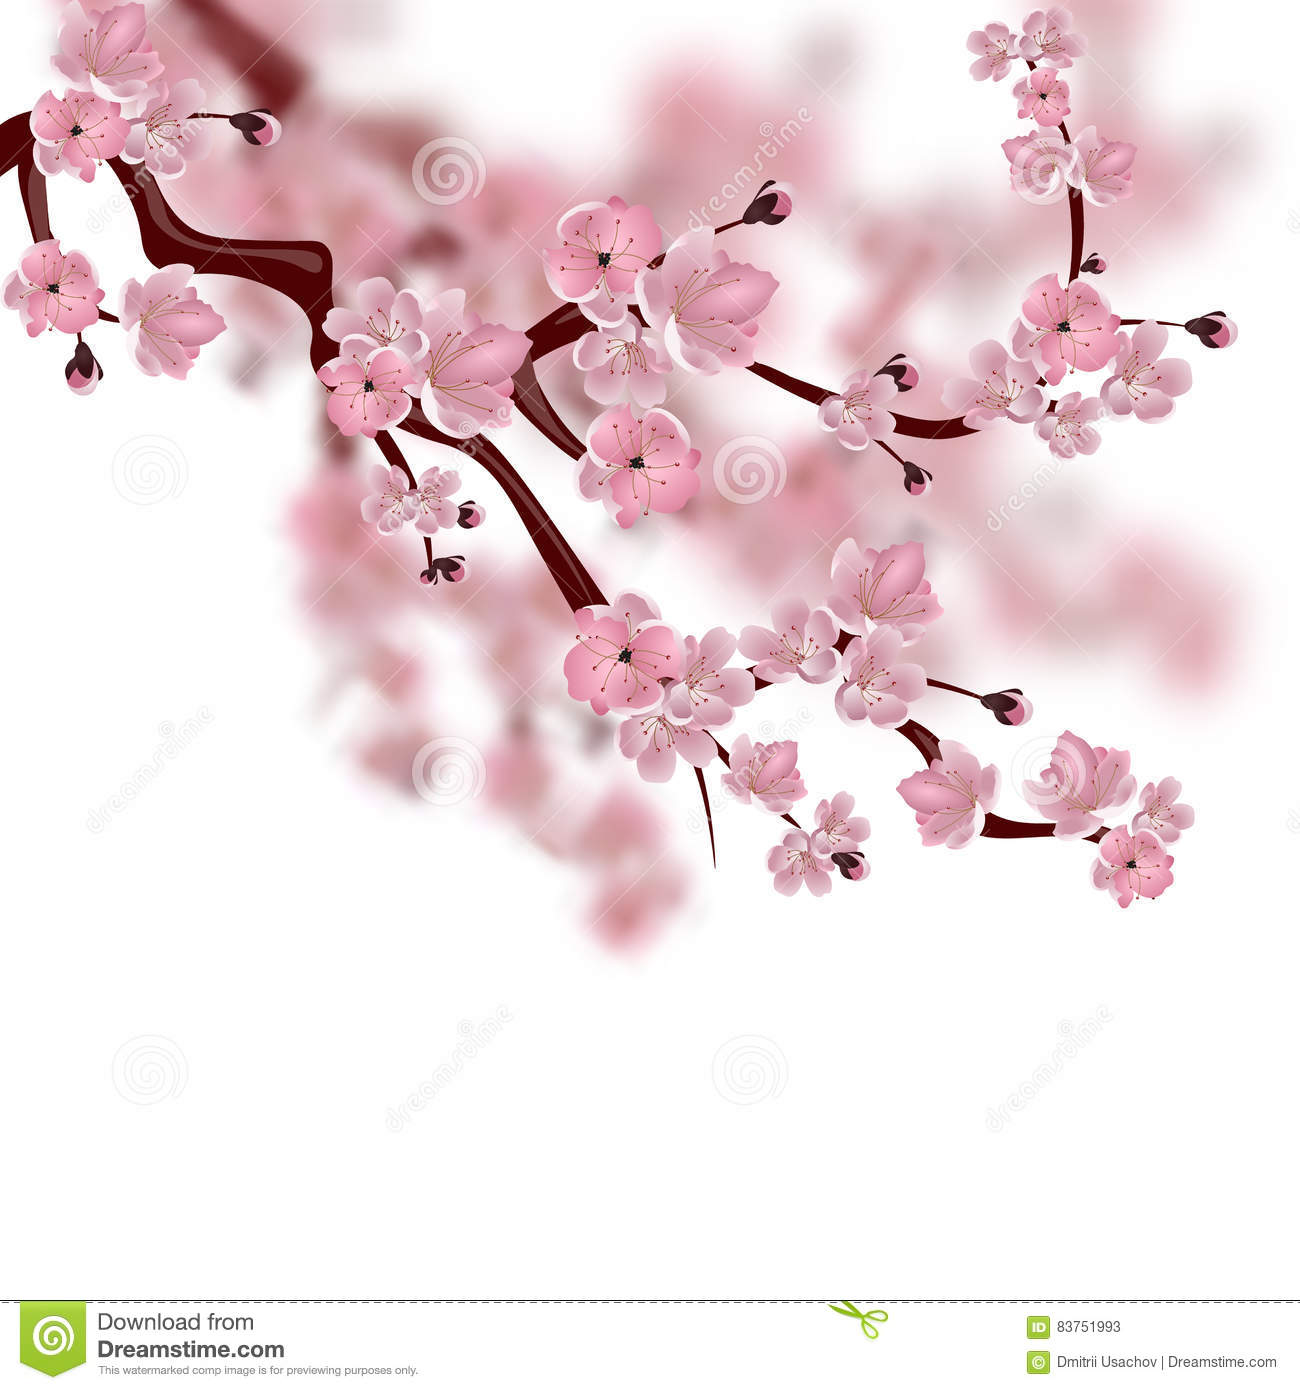 Japanese cherry tree a branch of pink sakura blossom isolated on background blossom branch cherry illustration isolated japanese pink sakura dhlflorist Images